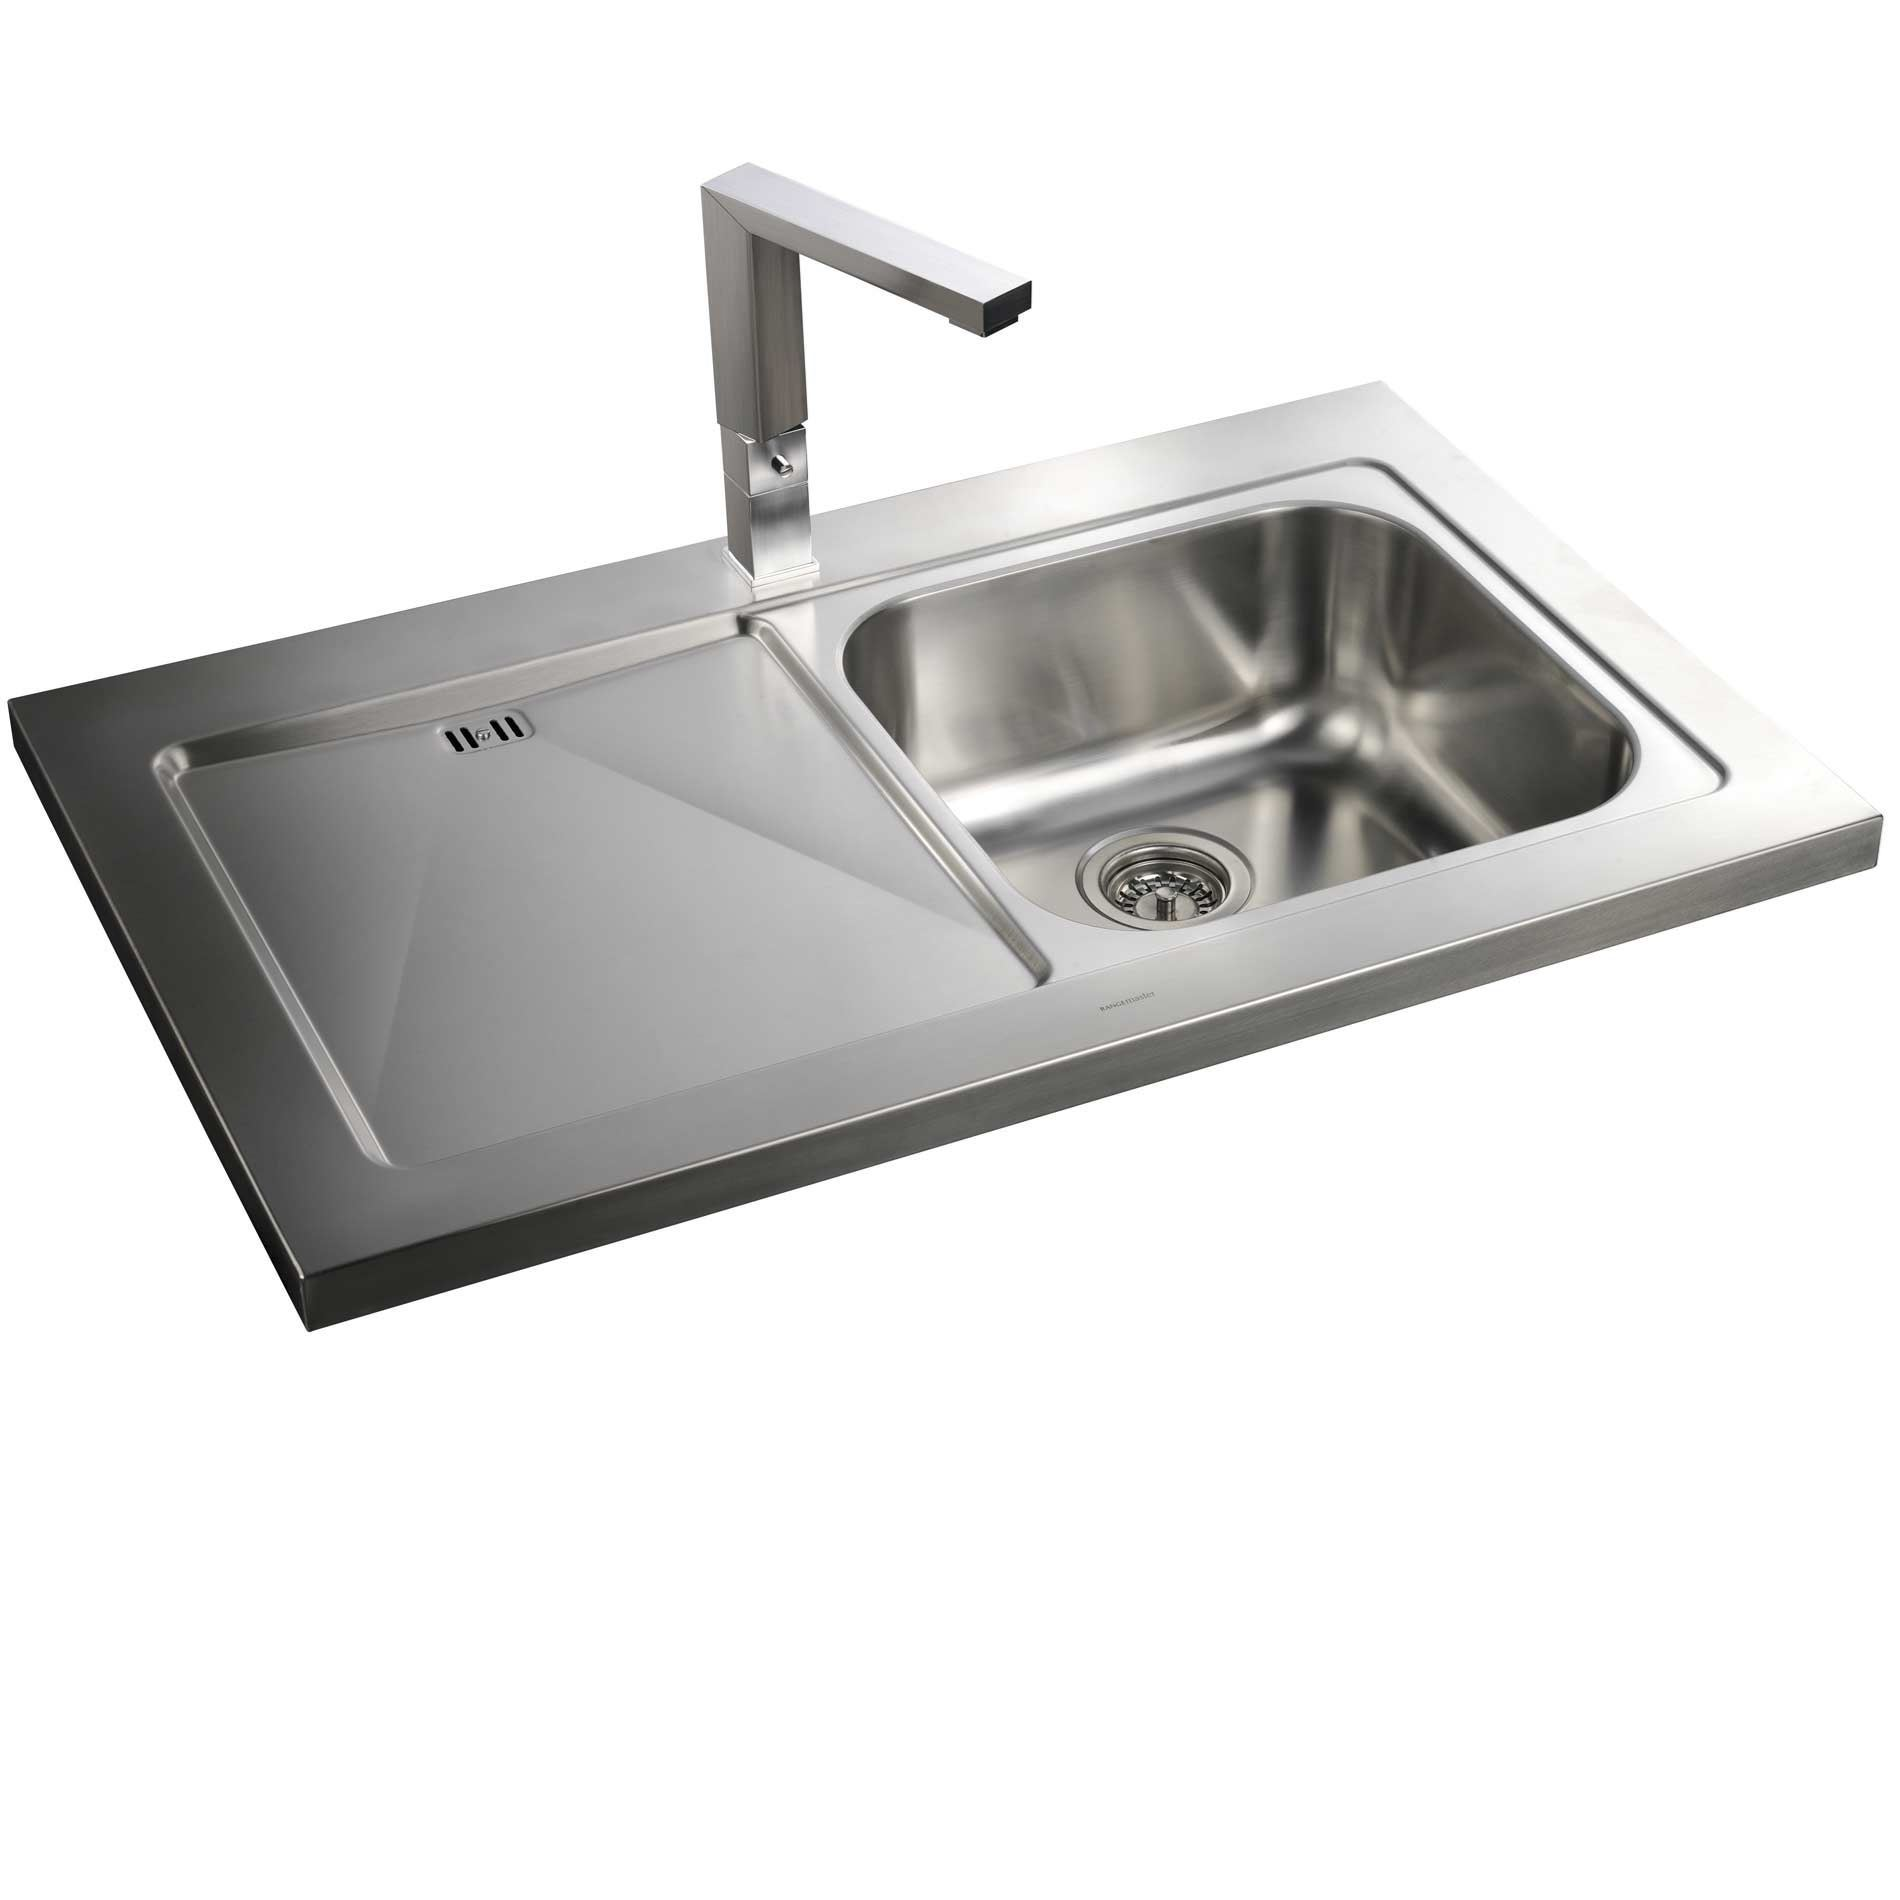 Grades Of Stainless Steel Sinks : ... : Mezzo MZ10001 Sit On Stainless Steel Sink - Kitchen Sinks & Taps